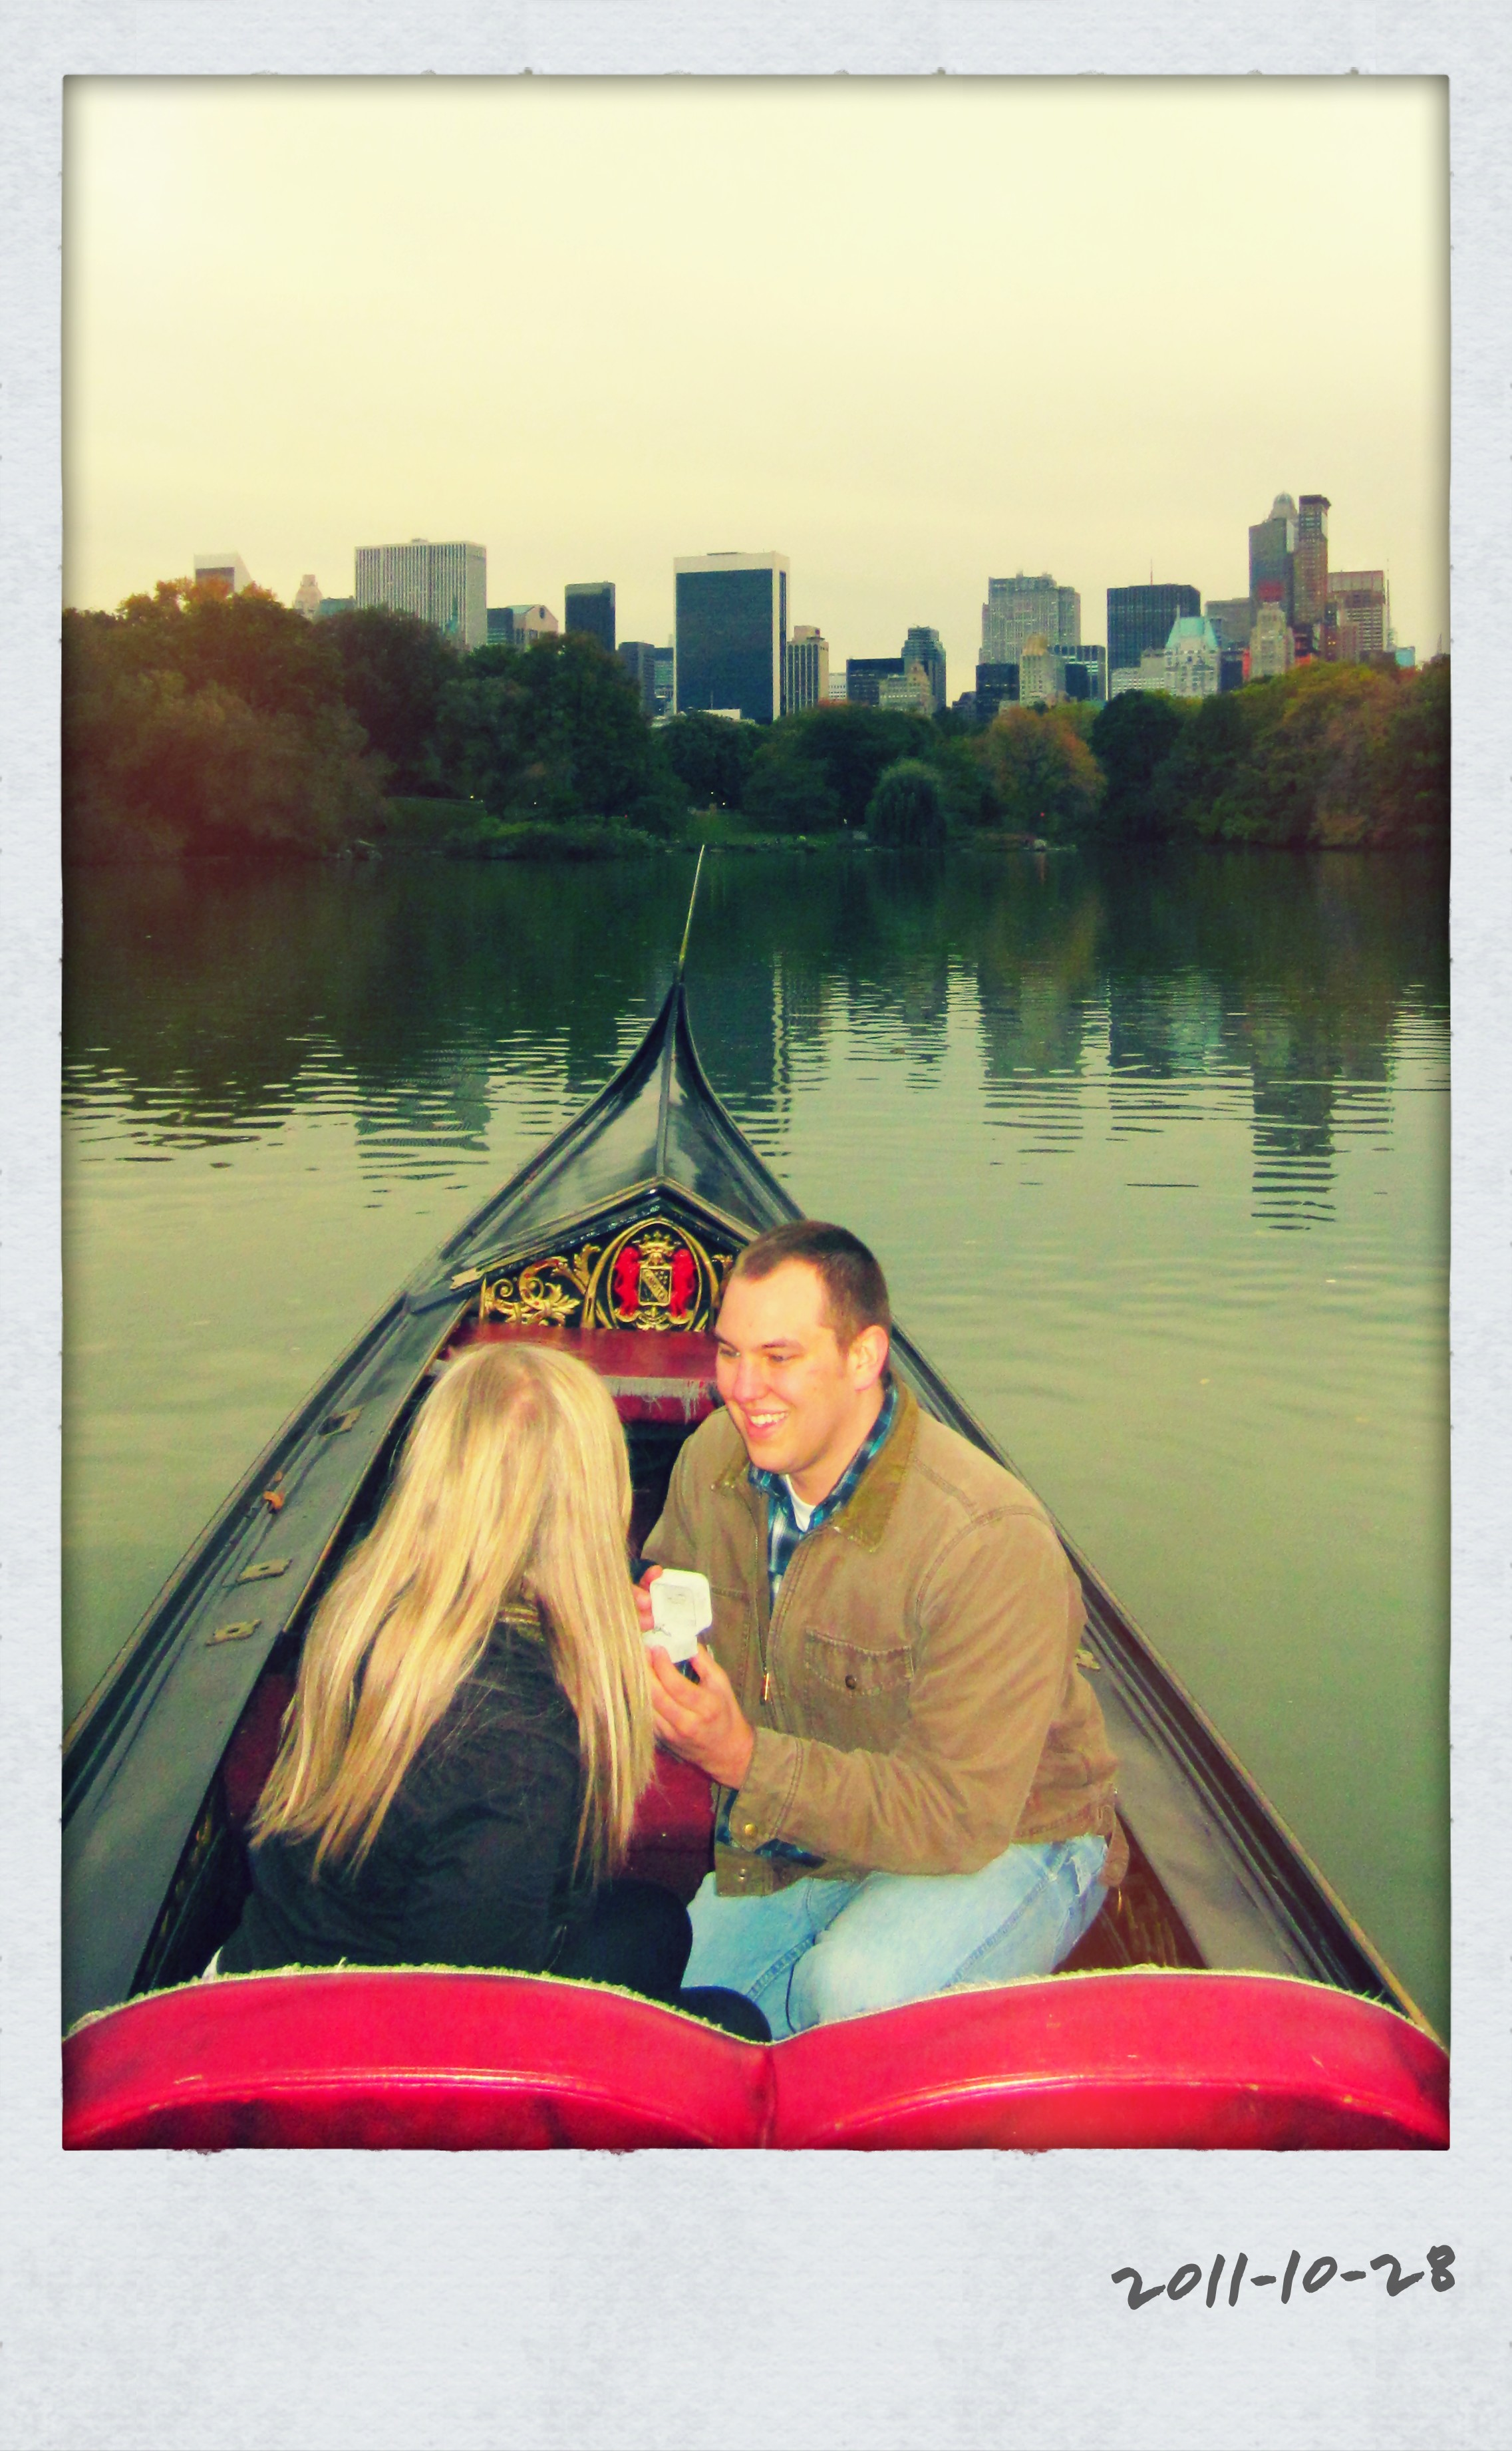 Engagement Proposal at Central Park New York